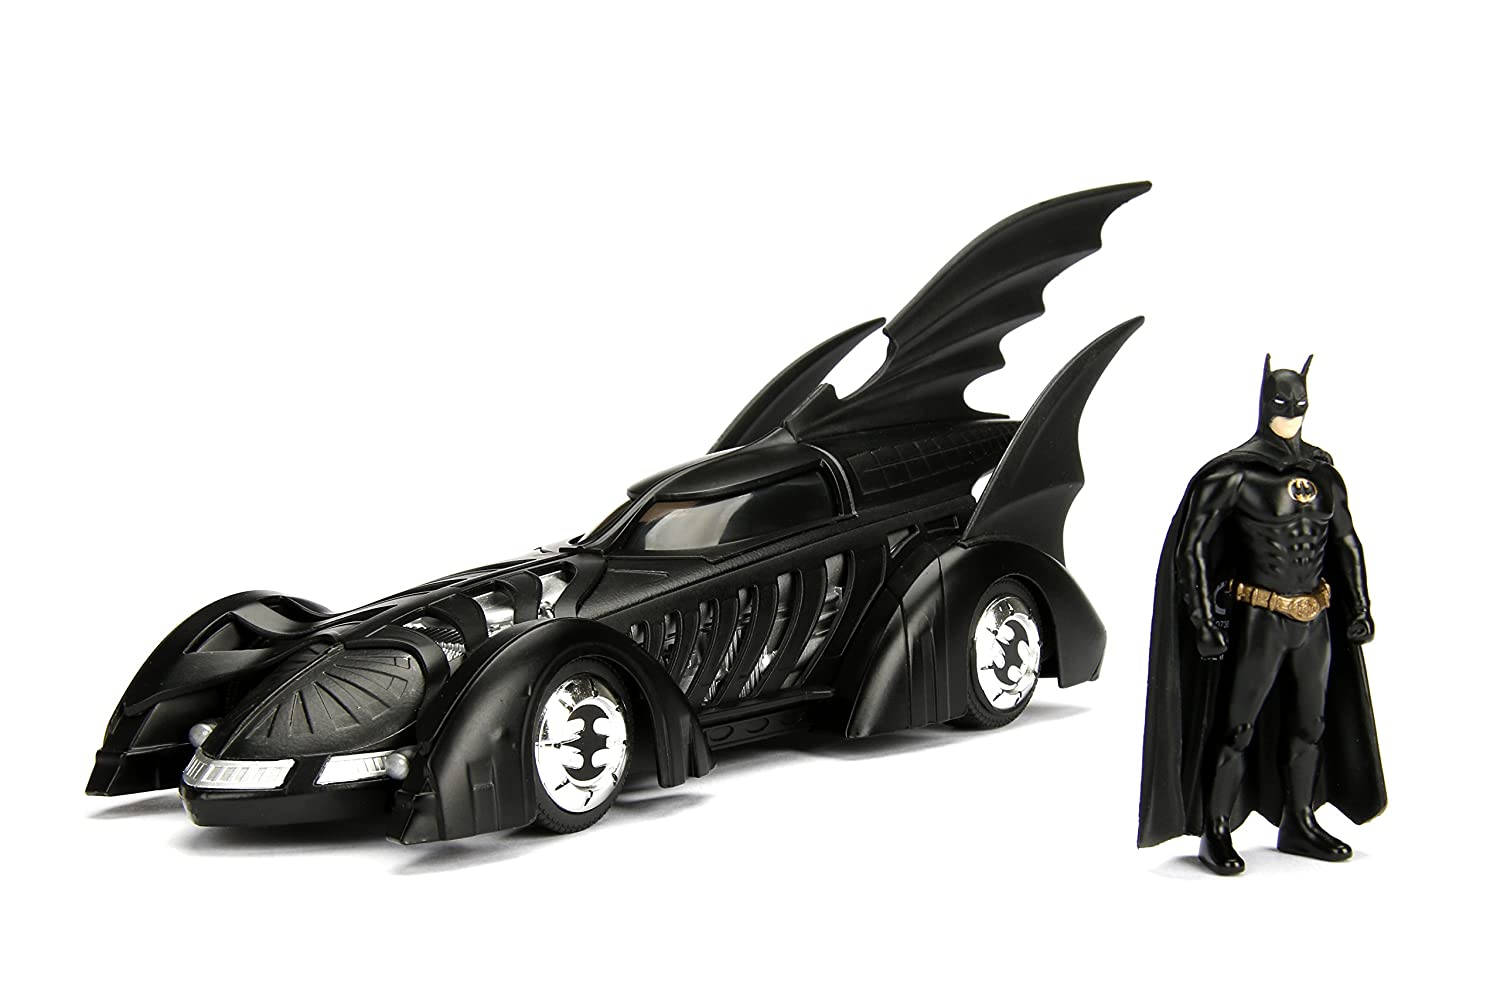 Jada Toys DC Comics 1995 Forever Batmobile with Batman Metals Die Cast Collectible Toy Vehicle with Figure 2 Piece Matte Black 1 24 Scale